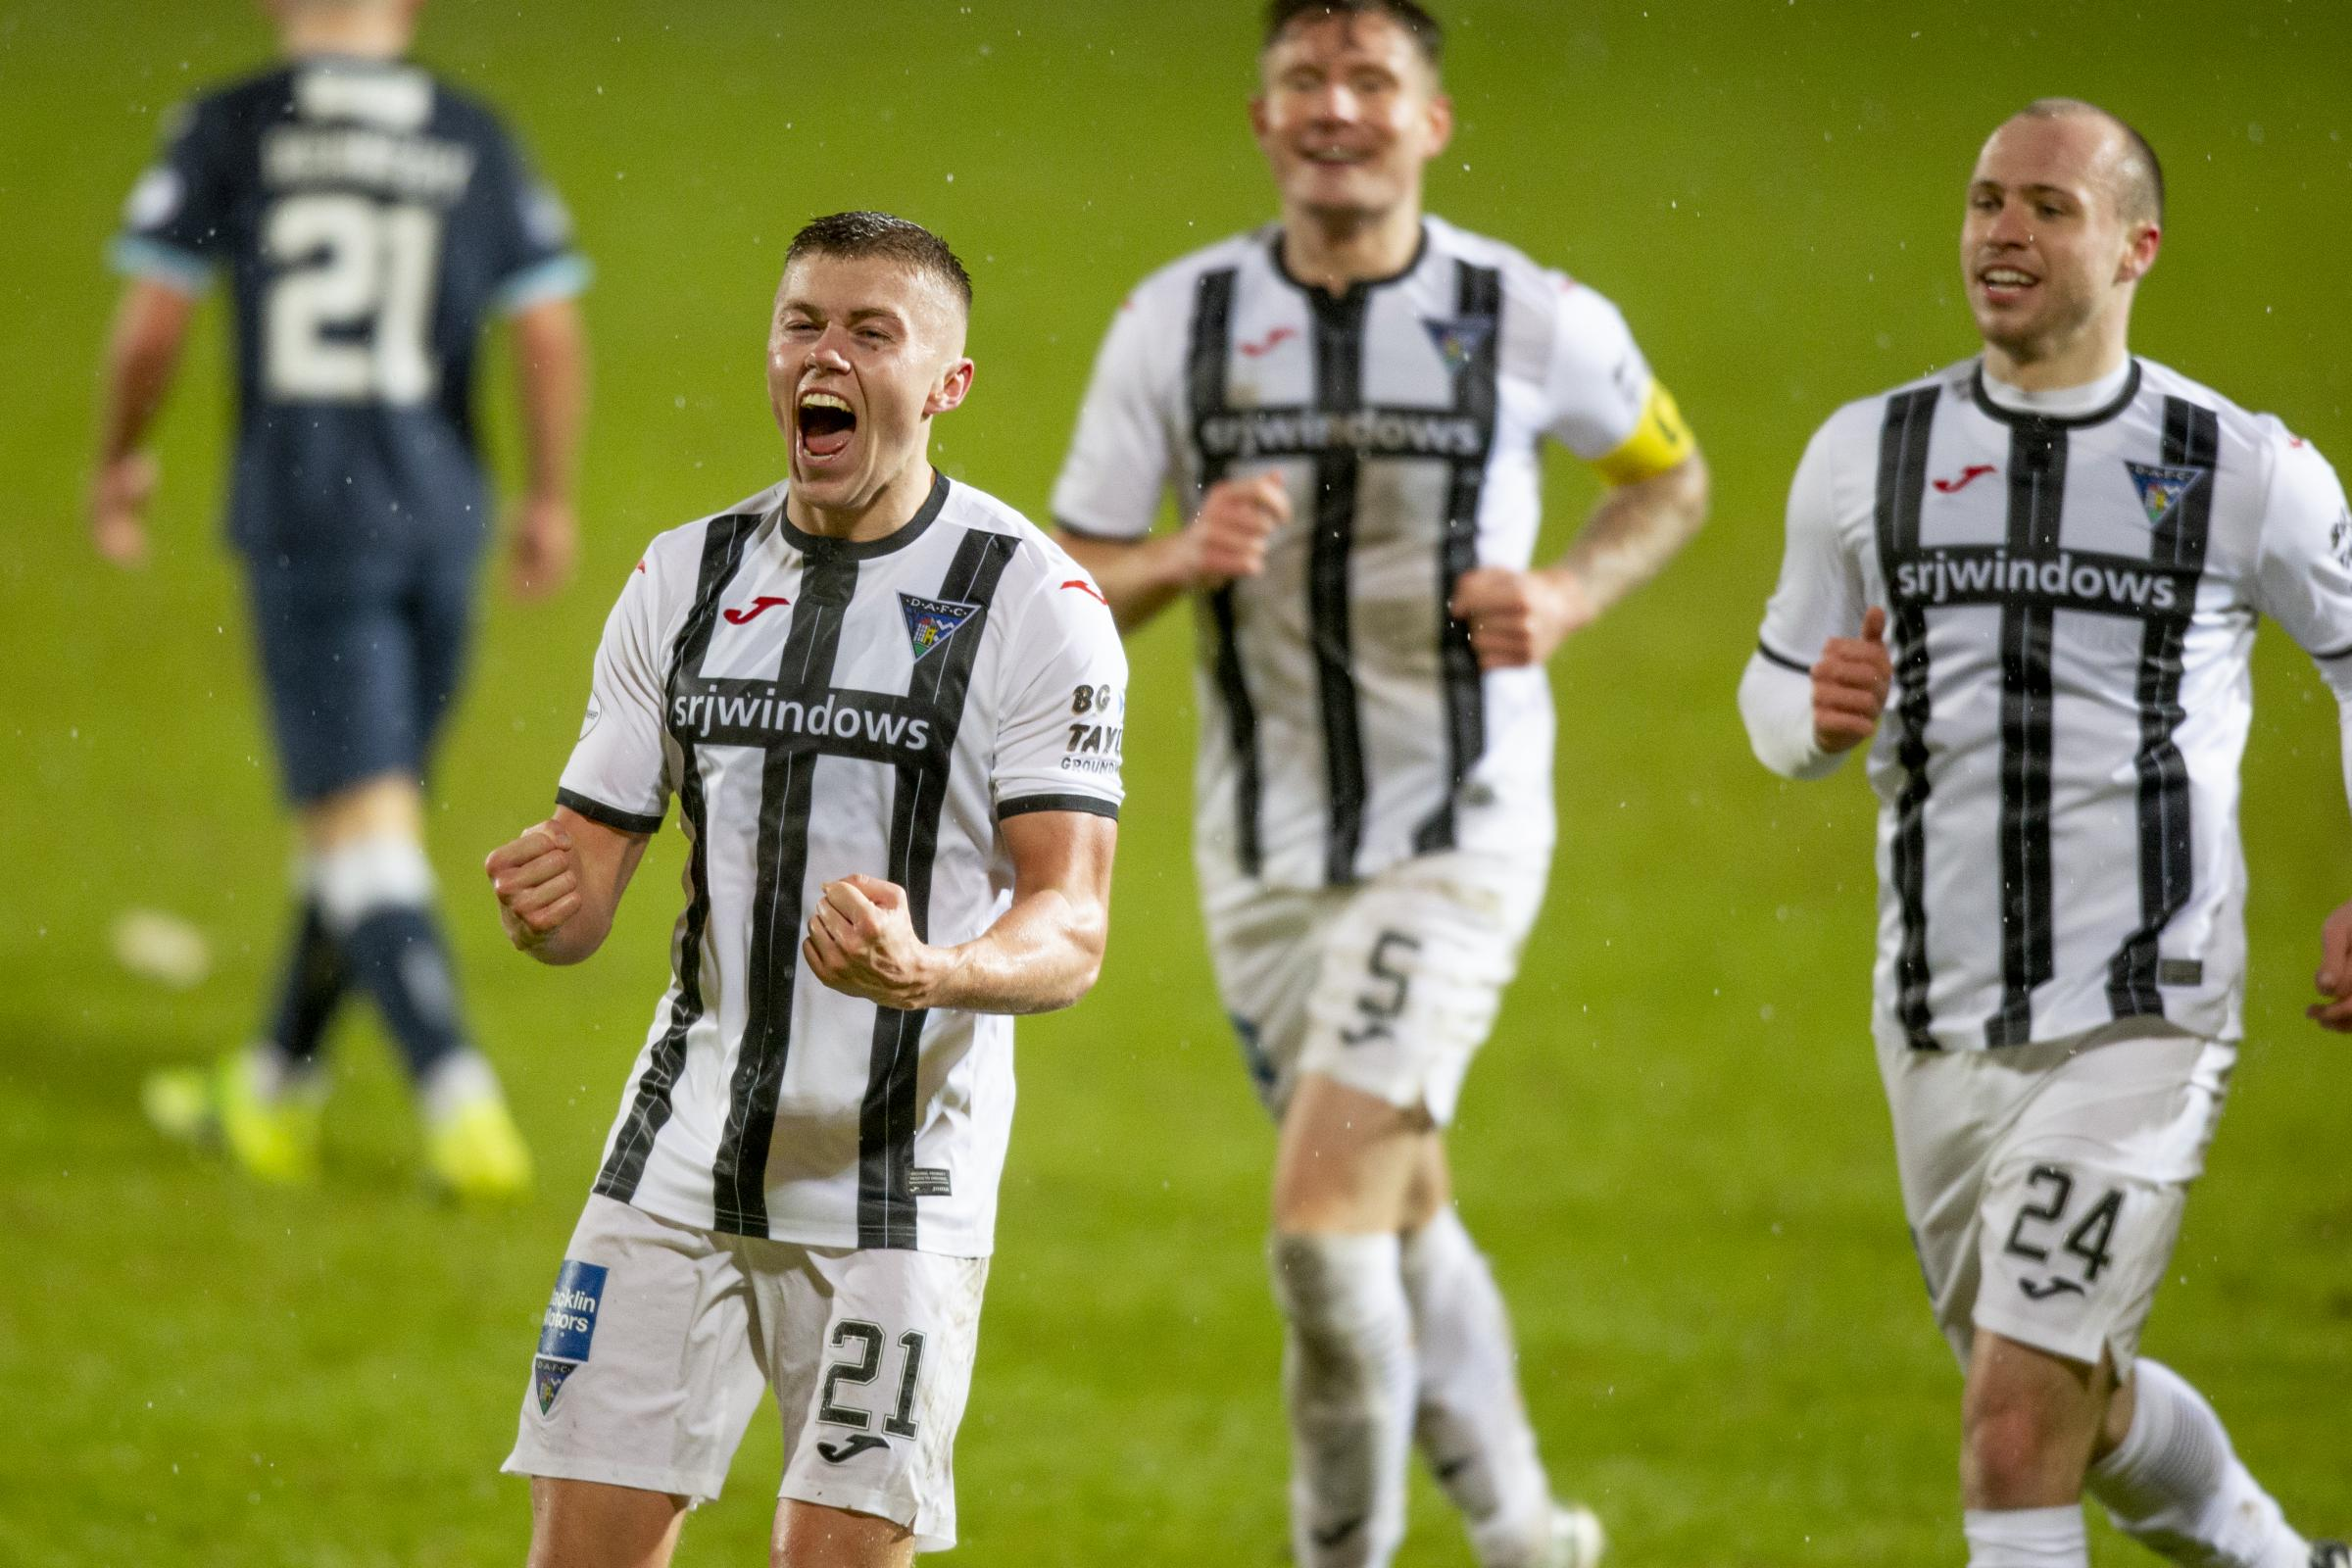 Dates for Dunfermline's Premiership play-off quarter final